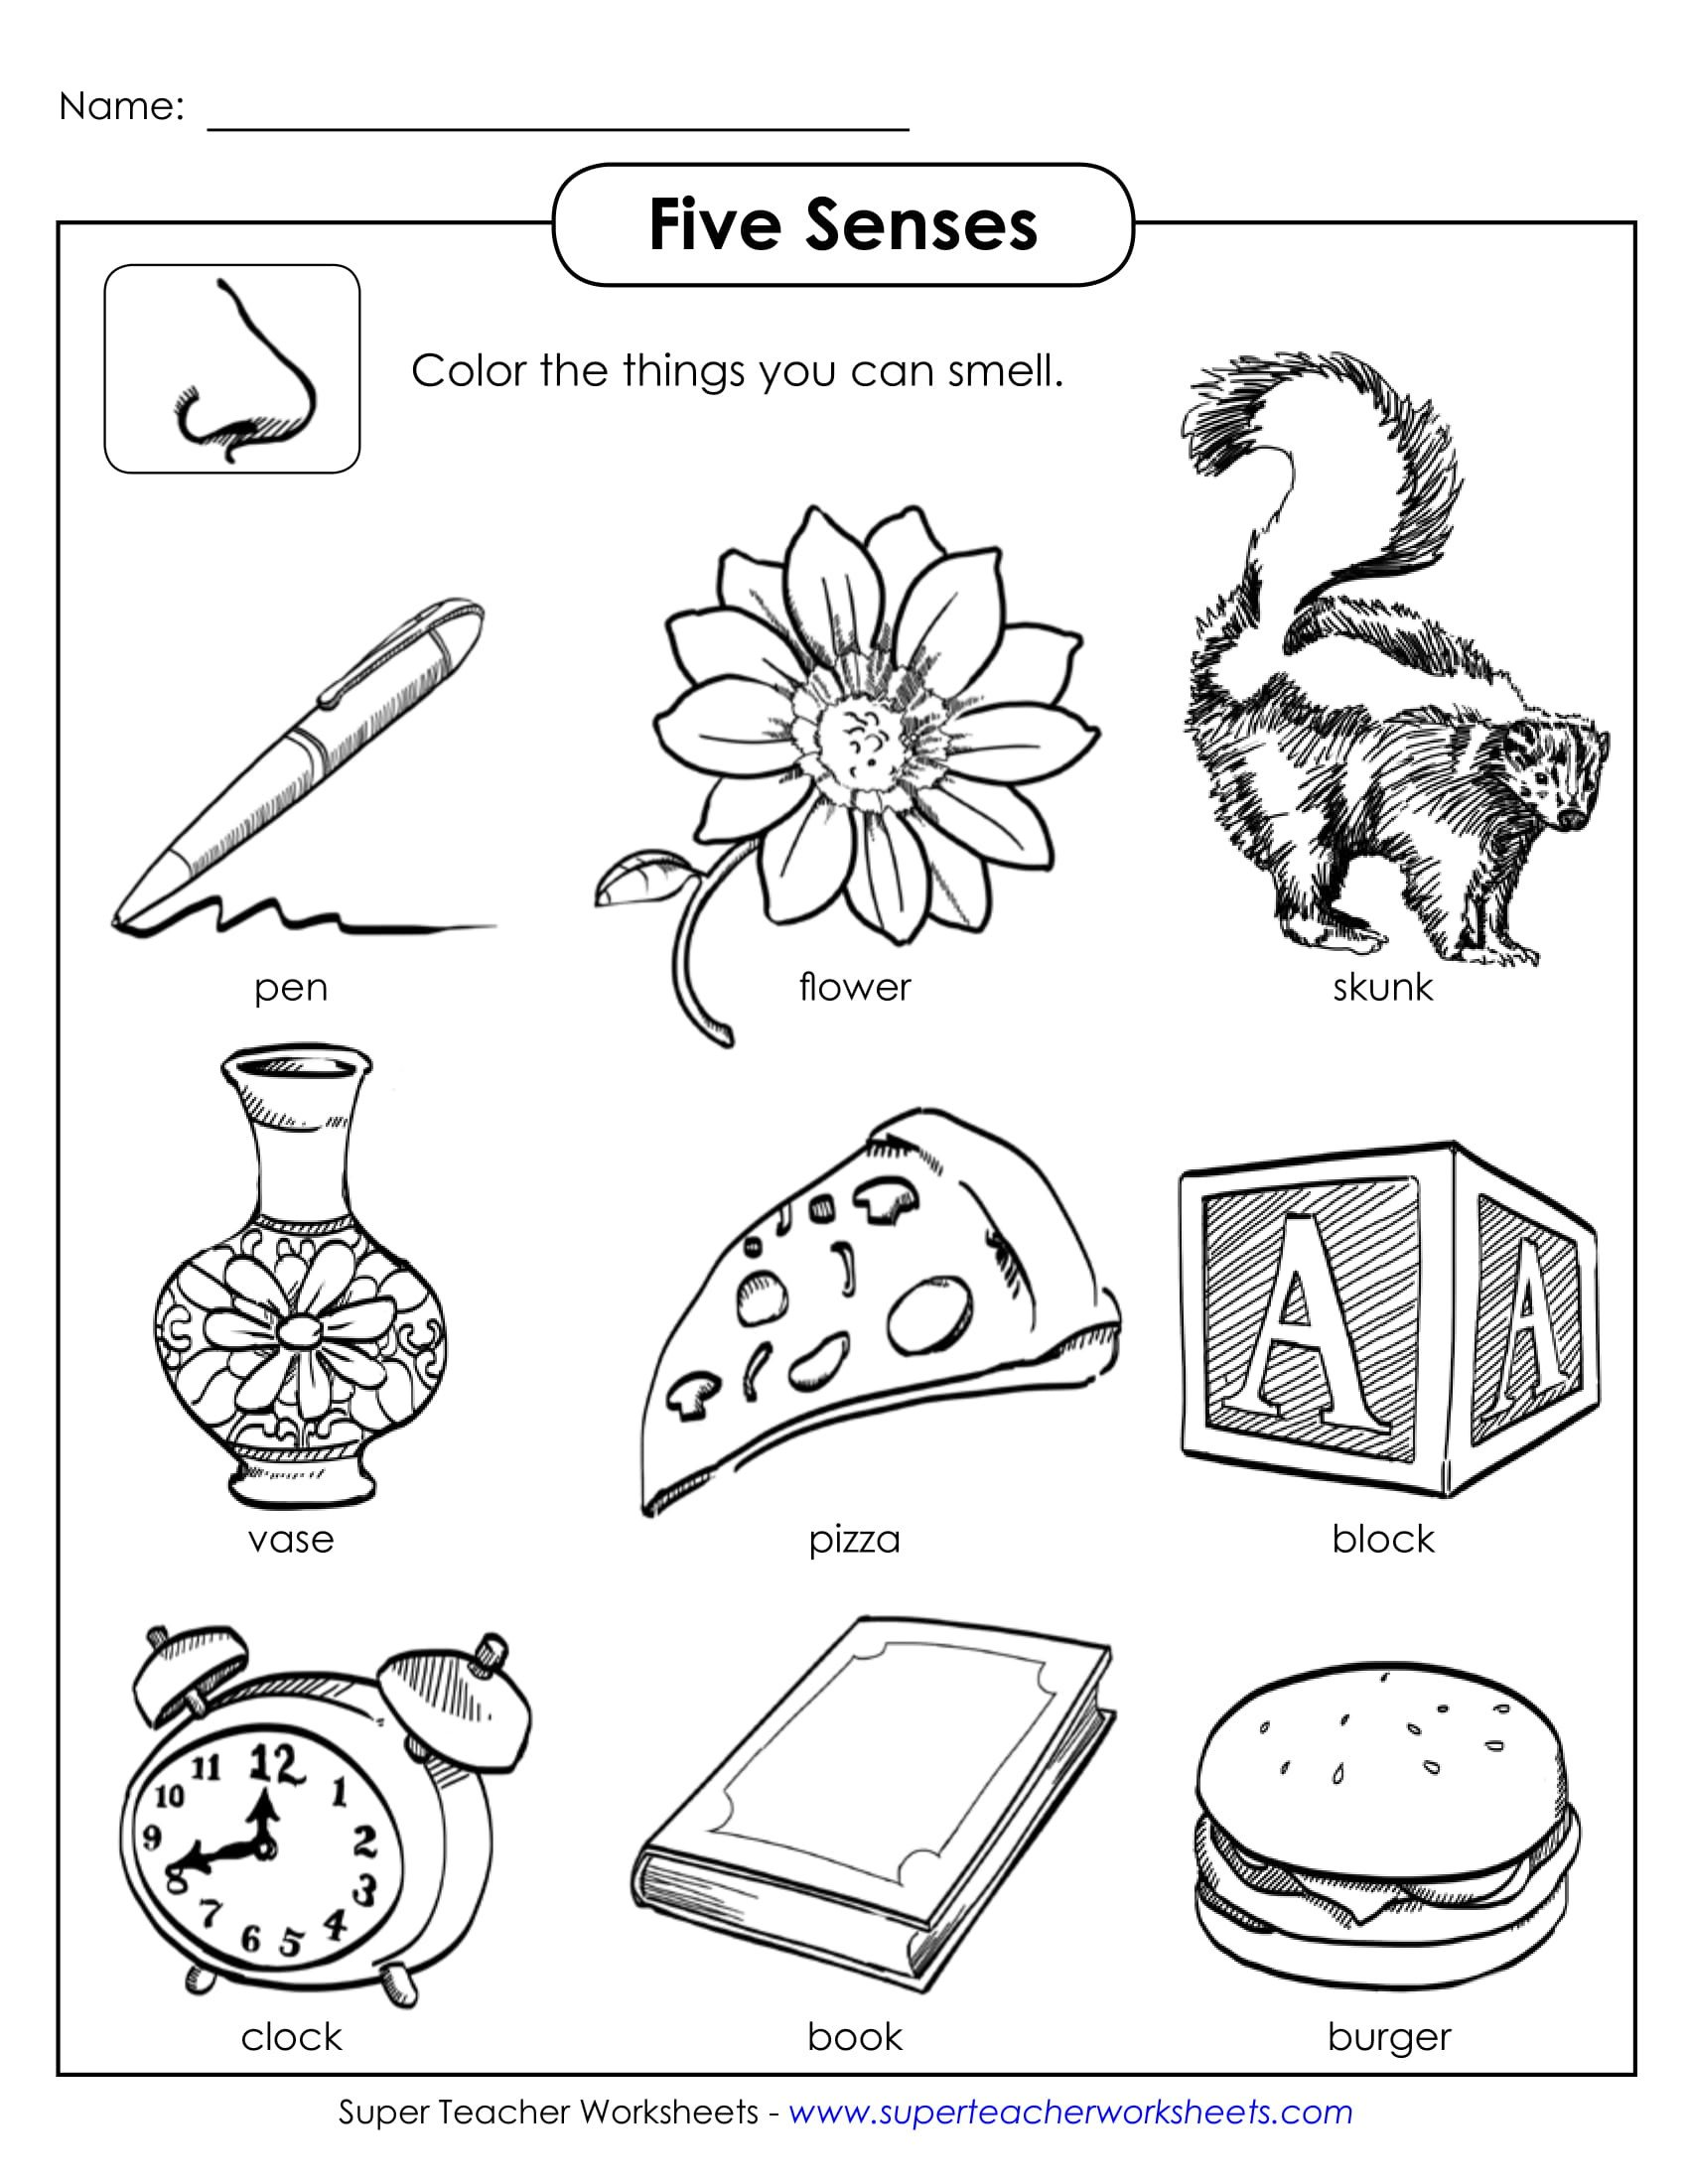 Five Senses Worksheets Preschool Your Sense Worksheet Printable Worksheets and Activities for